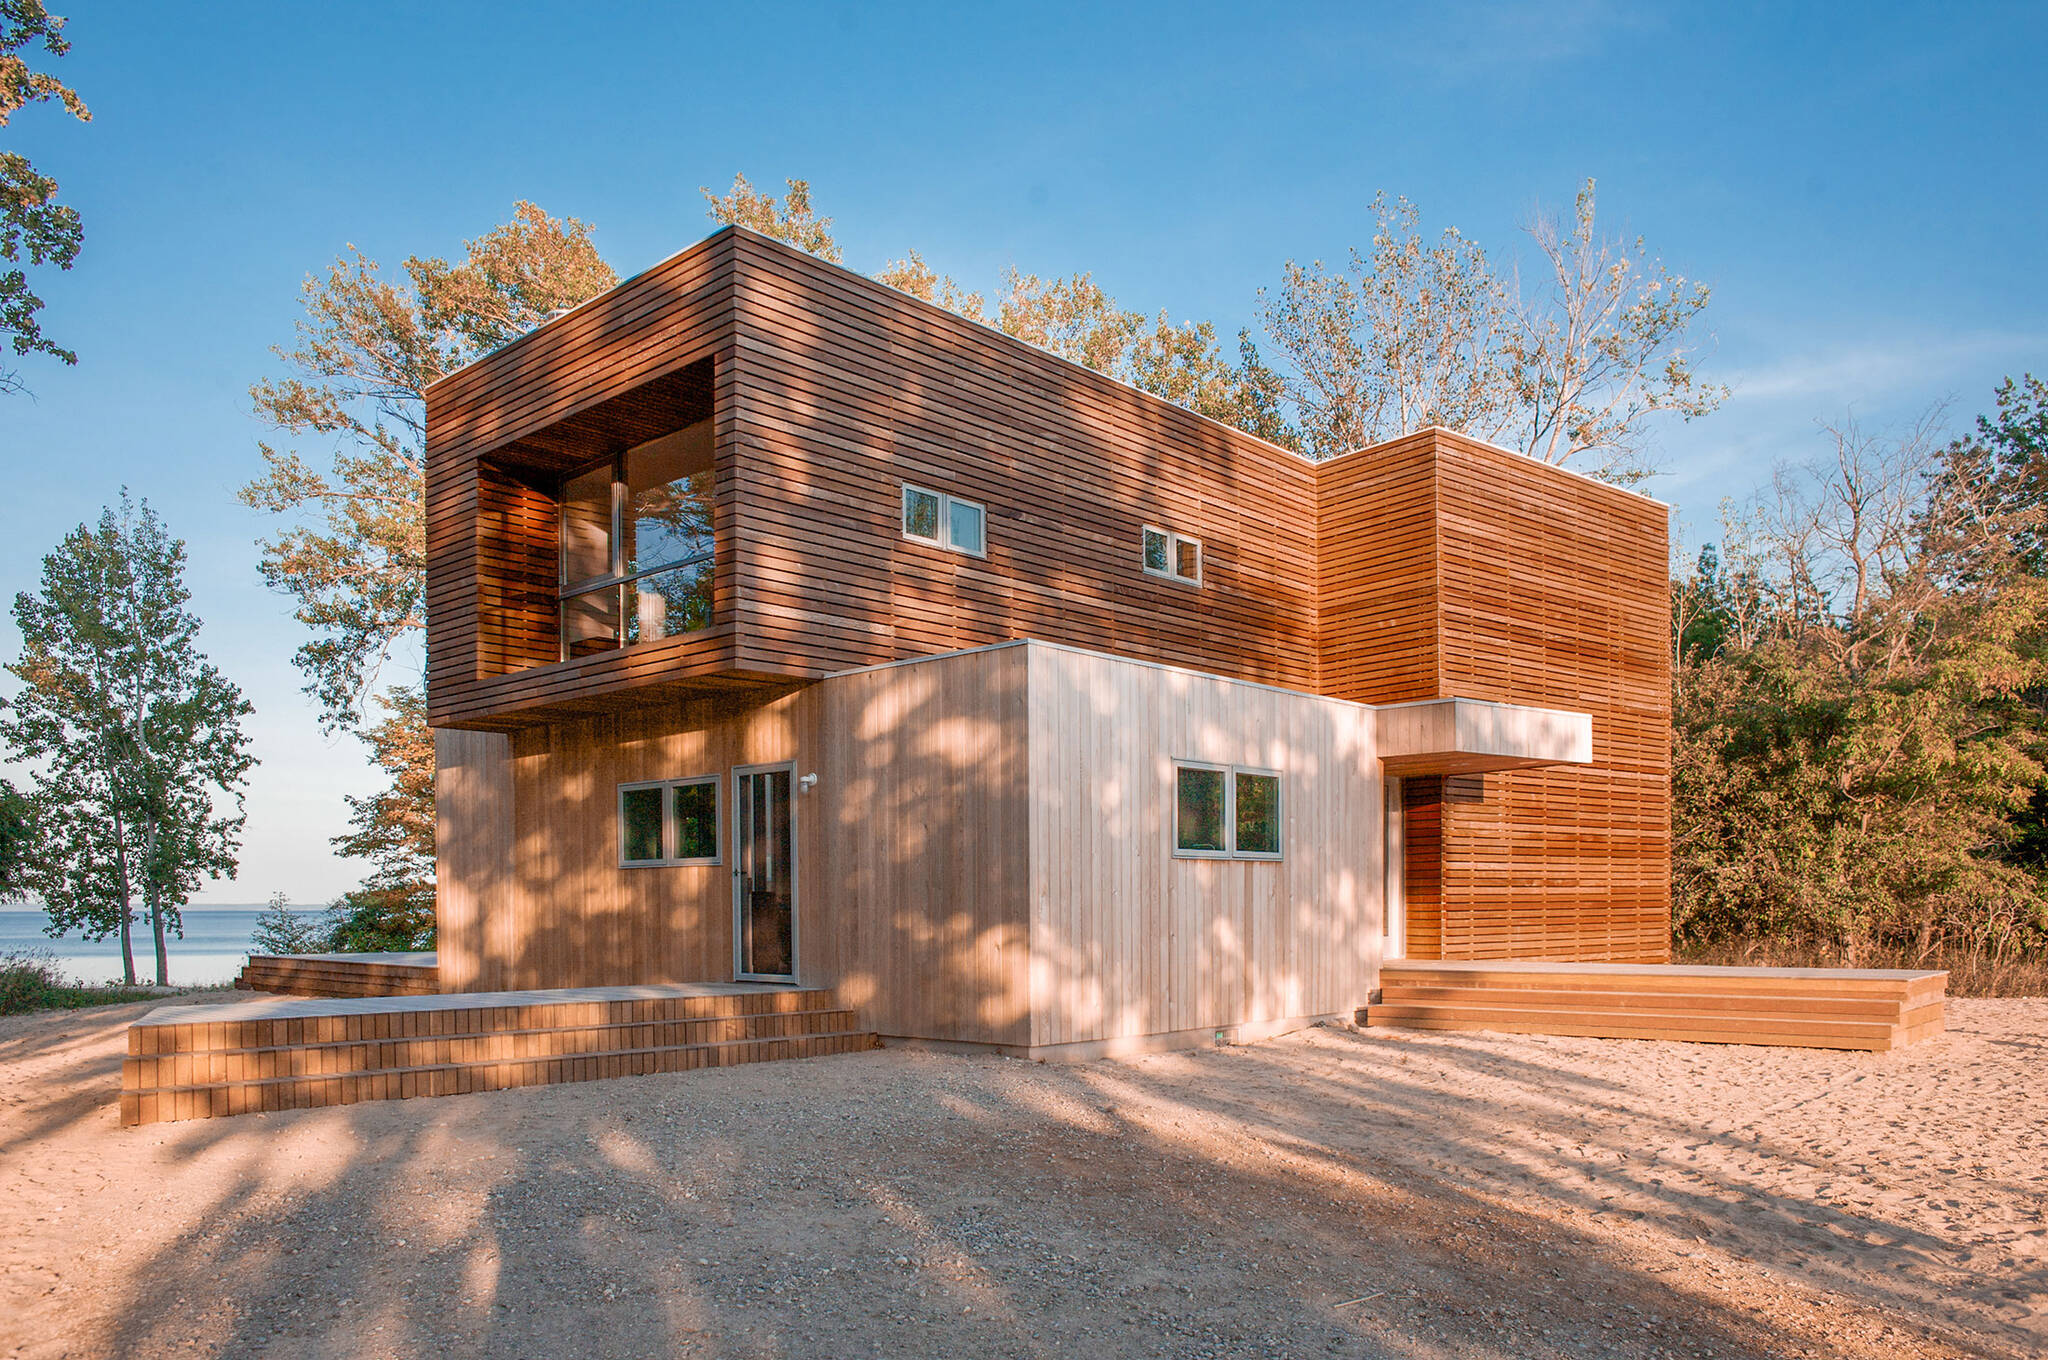 Sustainable lake house project with a LEED-gold certification in Omena, Michigan designed by the architecture studio Danny Forster & Architecture